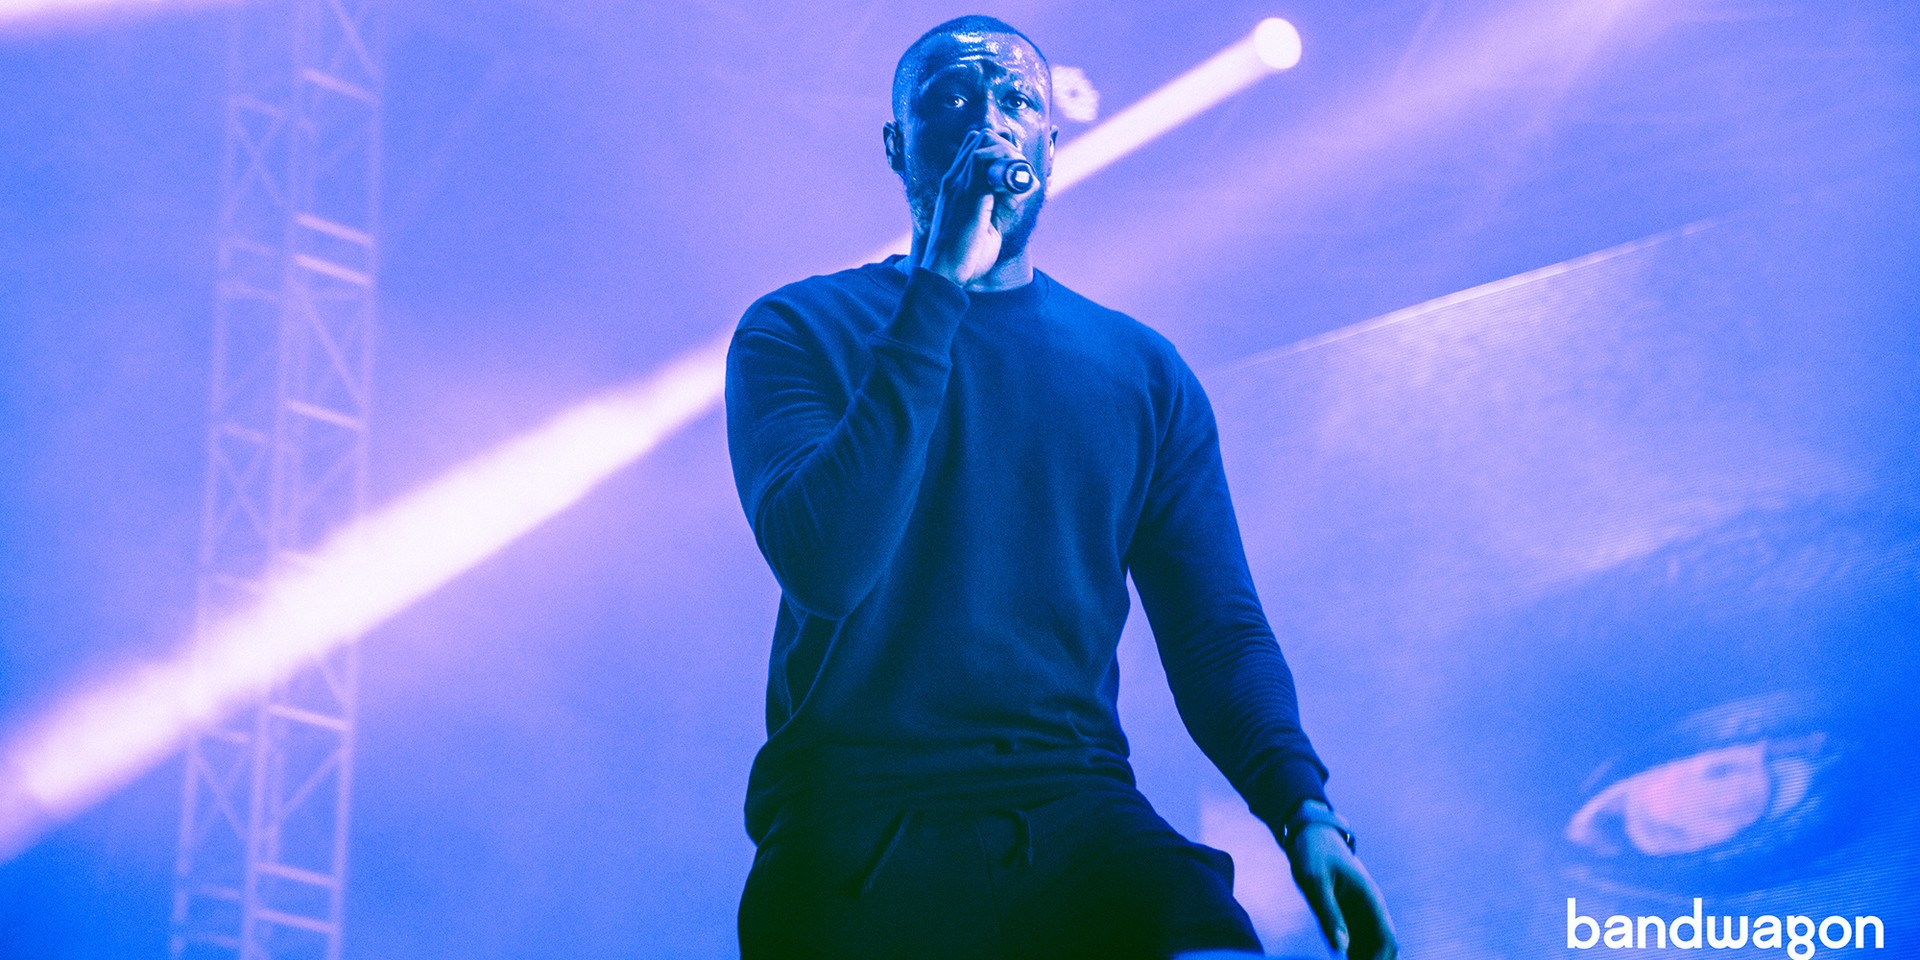 STORMZY to perform in Singapore this March